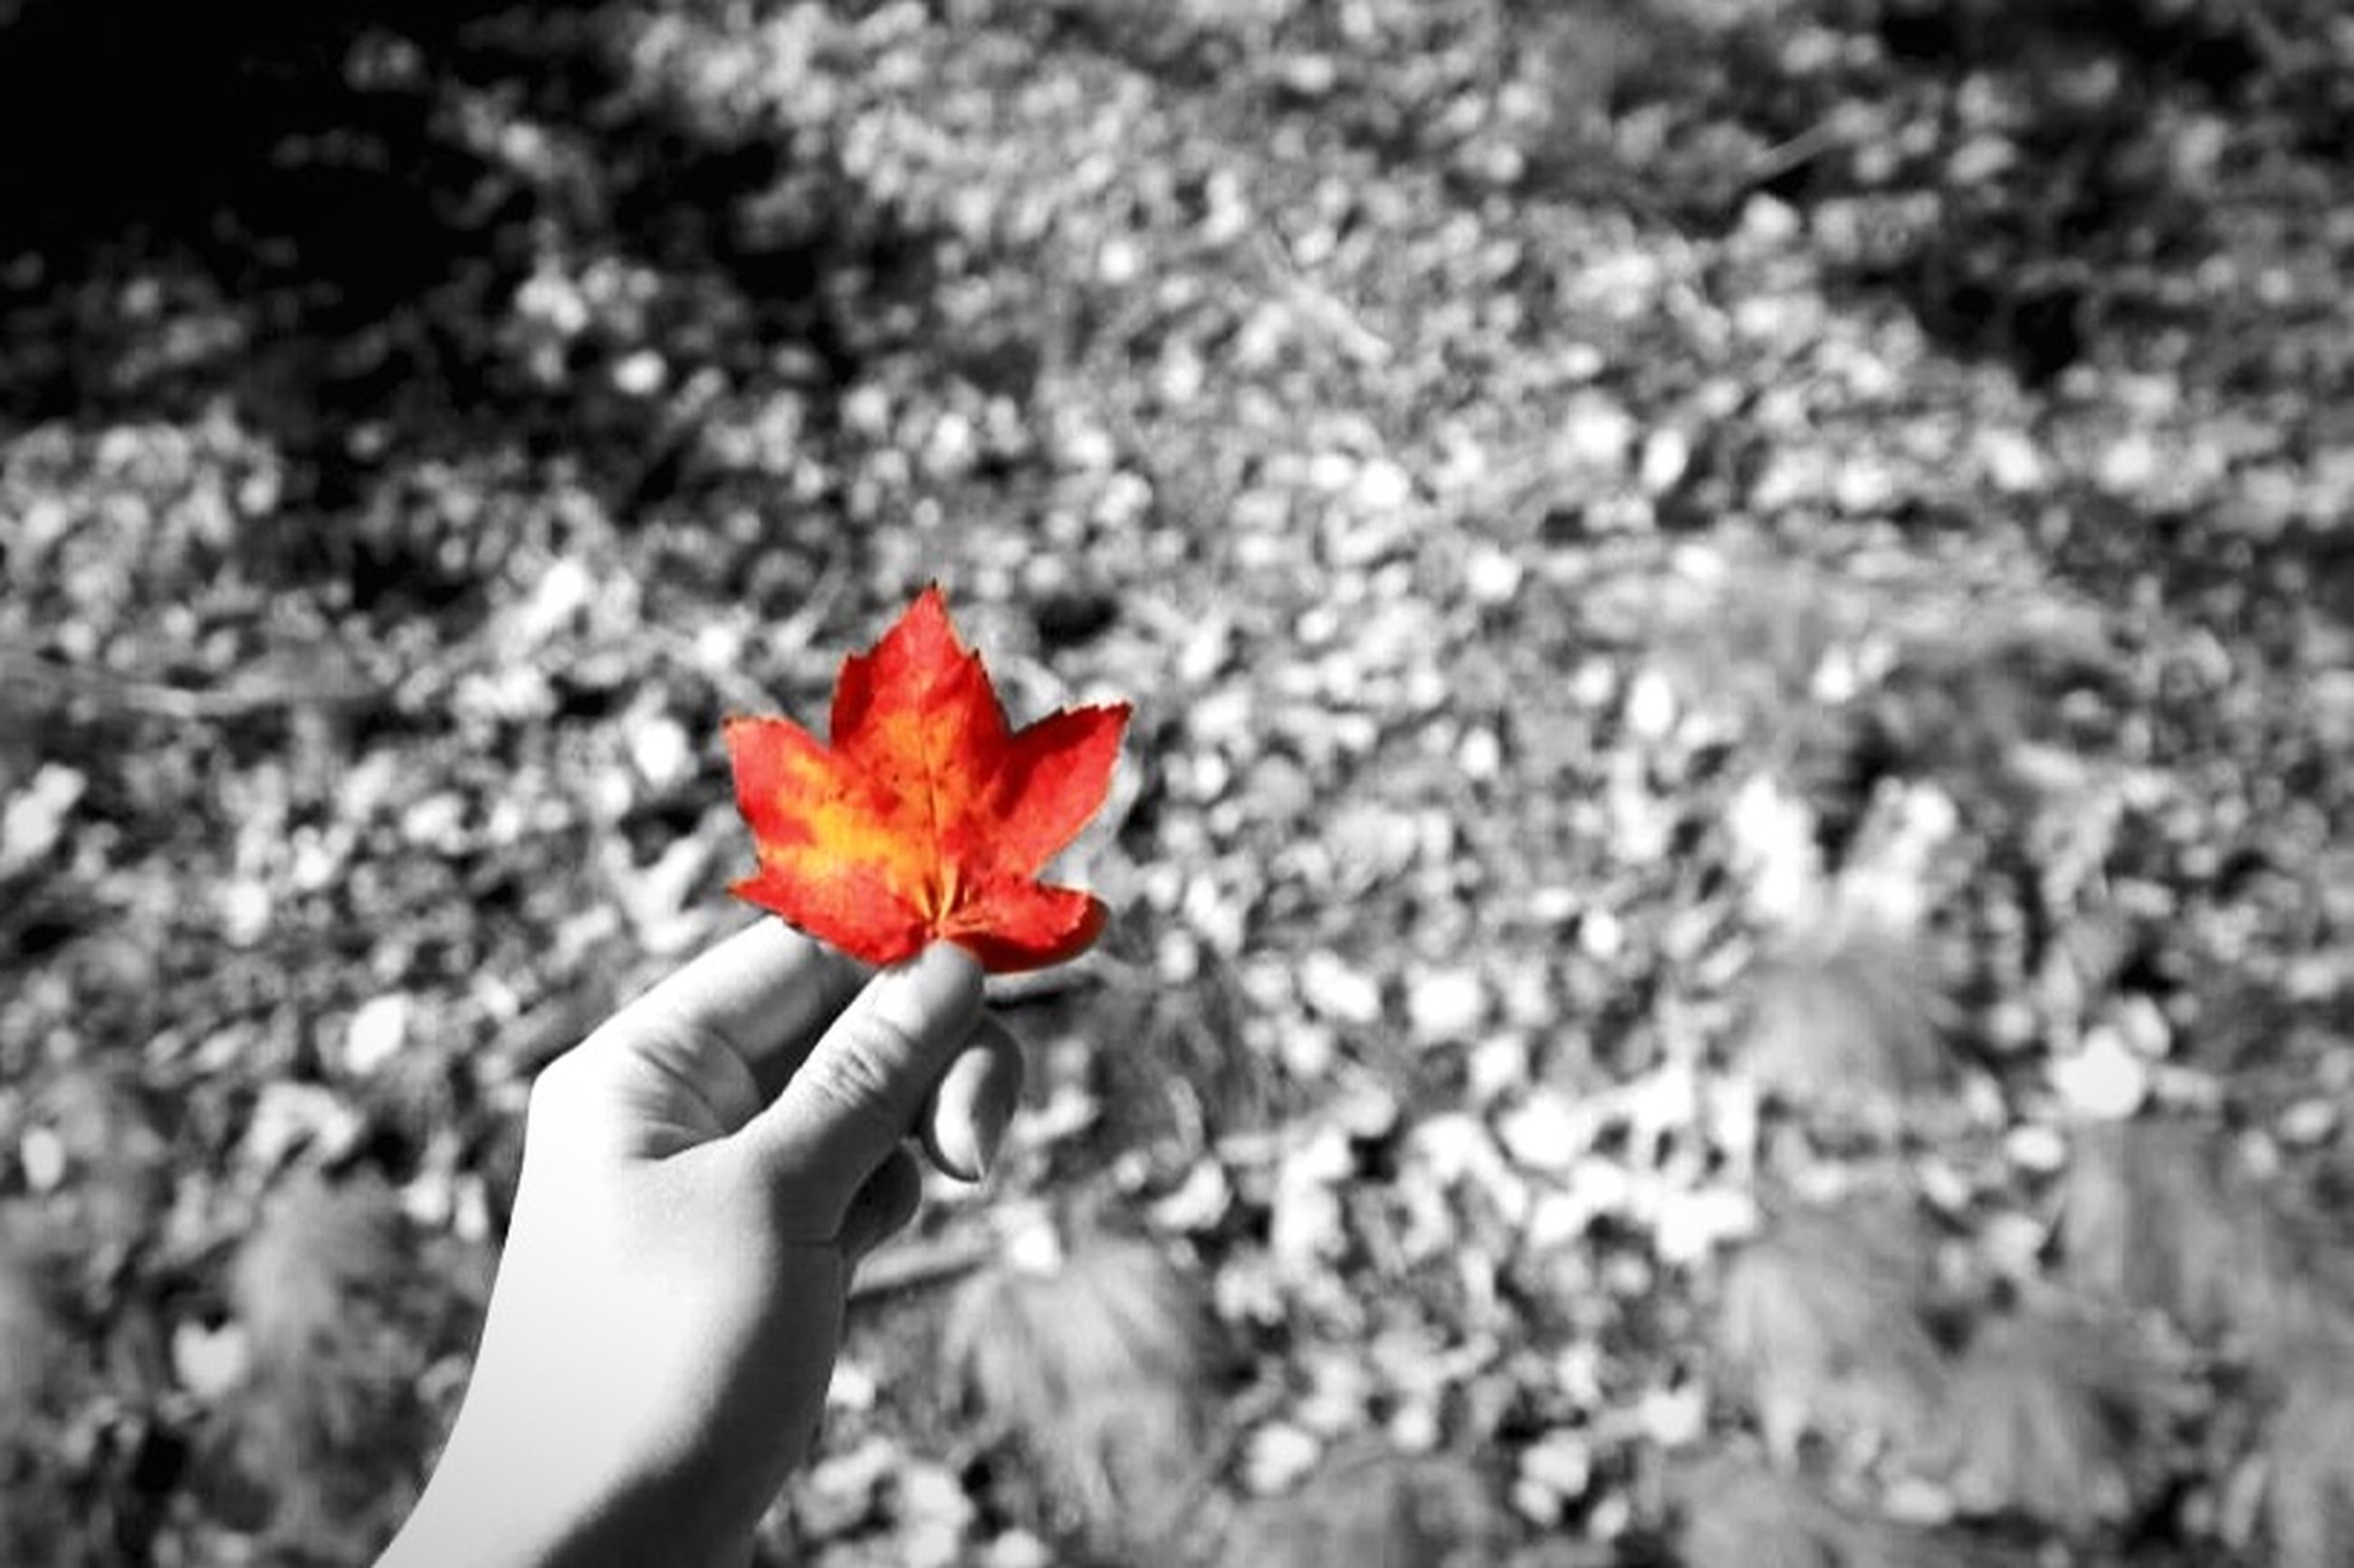 red, flower, person, petal, fragility, holding, flower head, part of, close-up, single flower, freshness, nature, unrecognizable person, lifestyles, focus on foreground, beauty in nature, outdoors